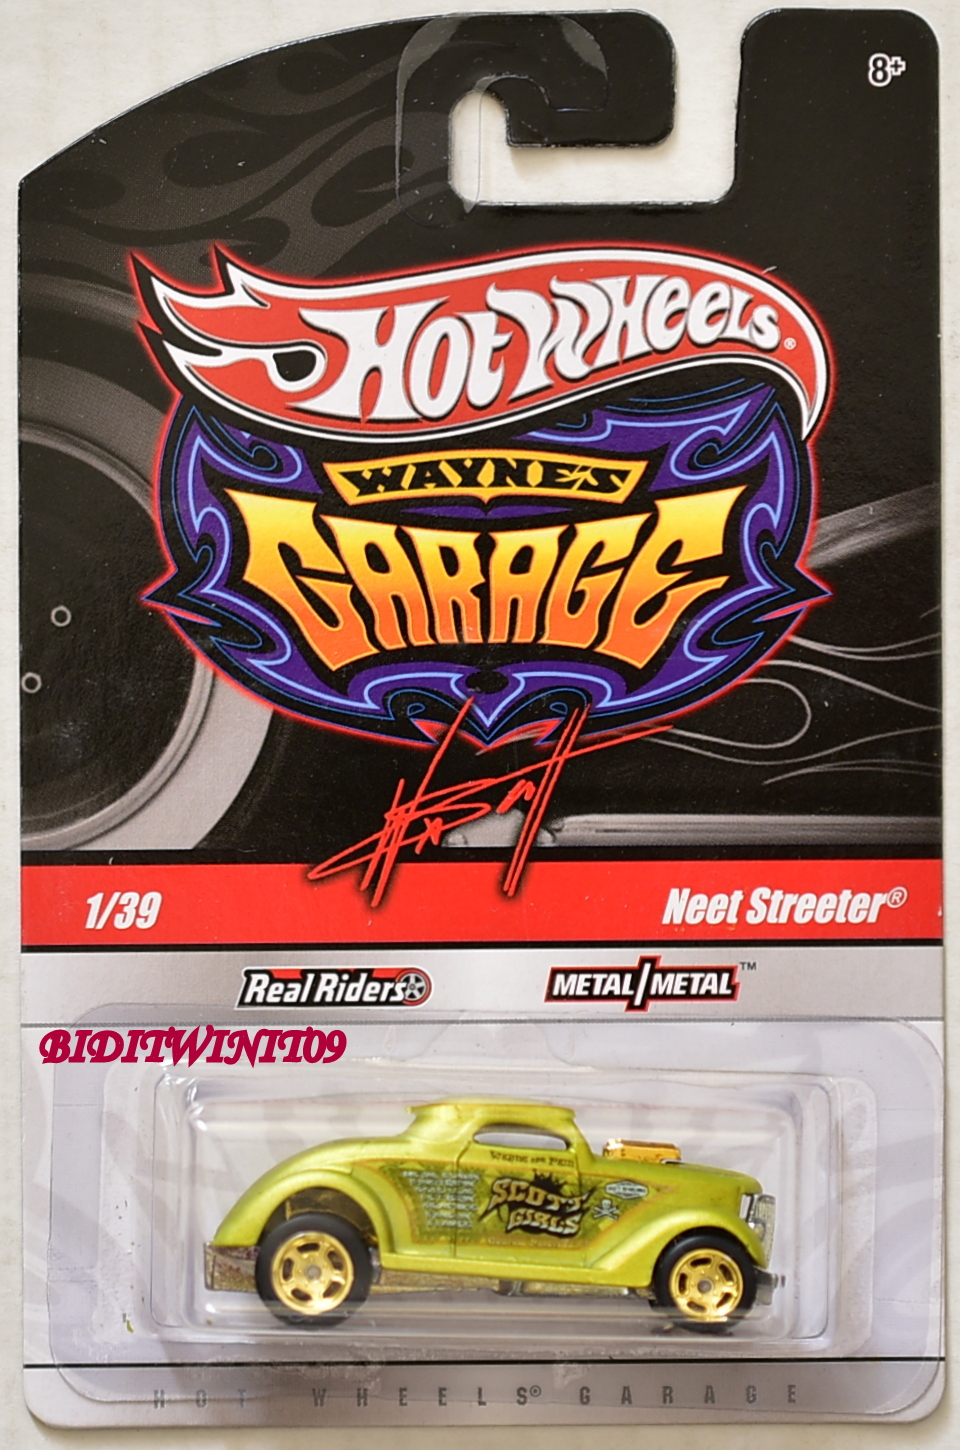 HOT WHEELS WAYNE'S GARAGE NEET STREETER #1/39